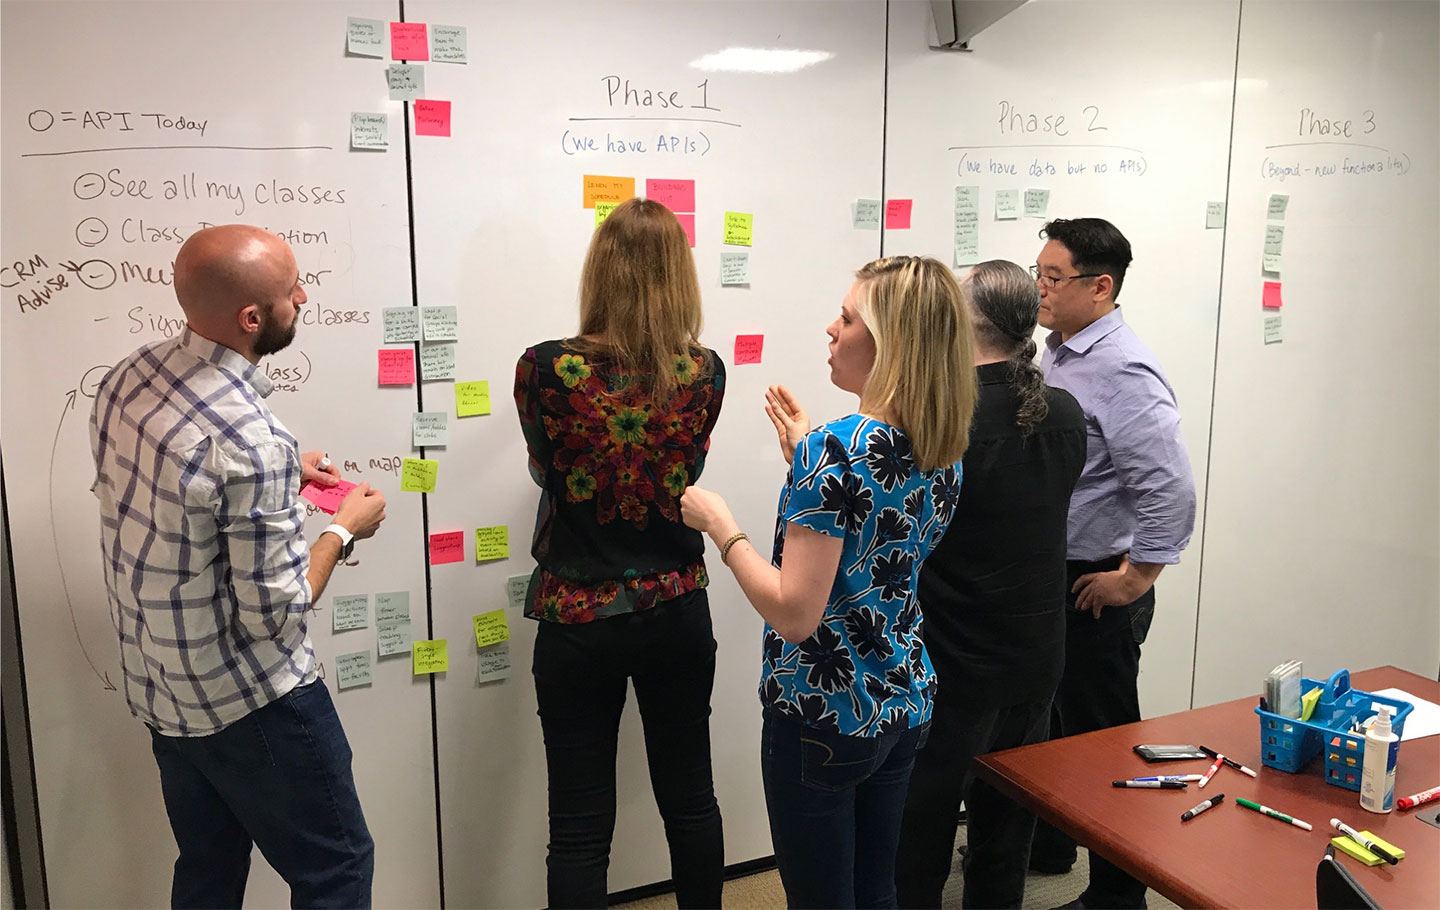 Leading an ideation session and design sprint